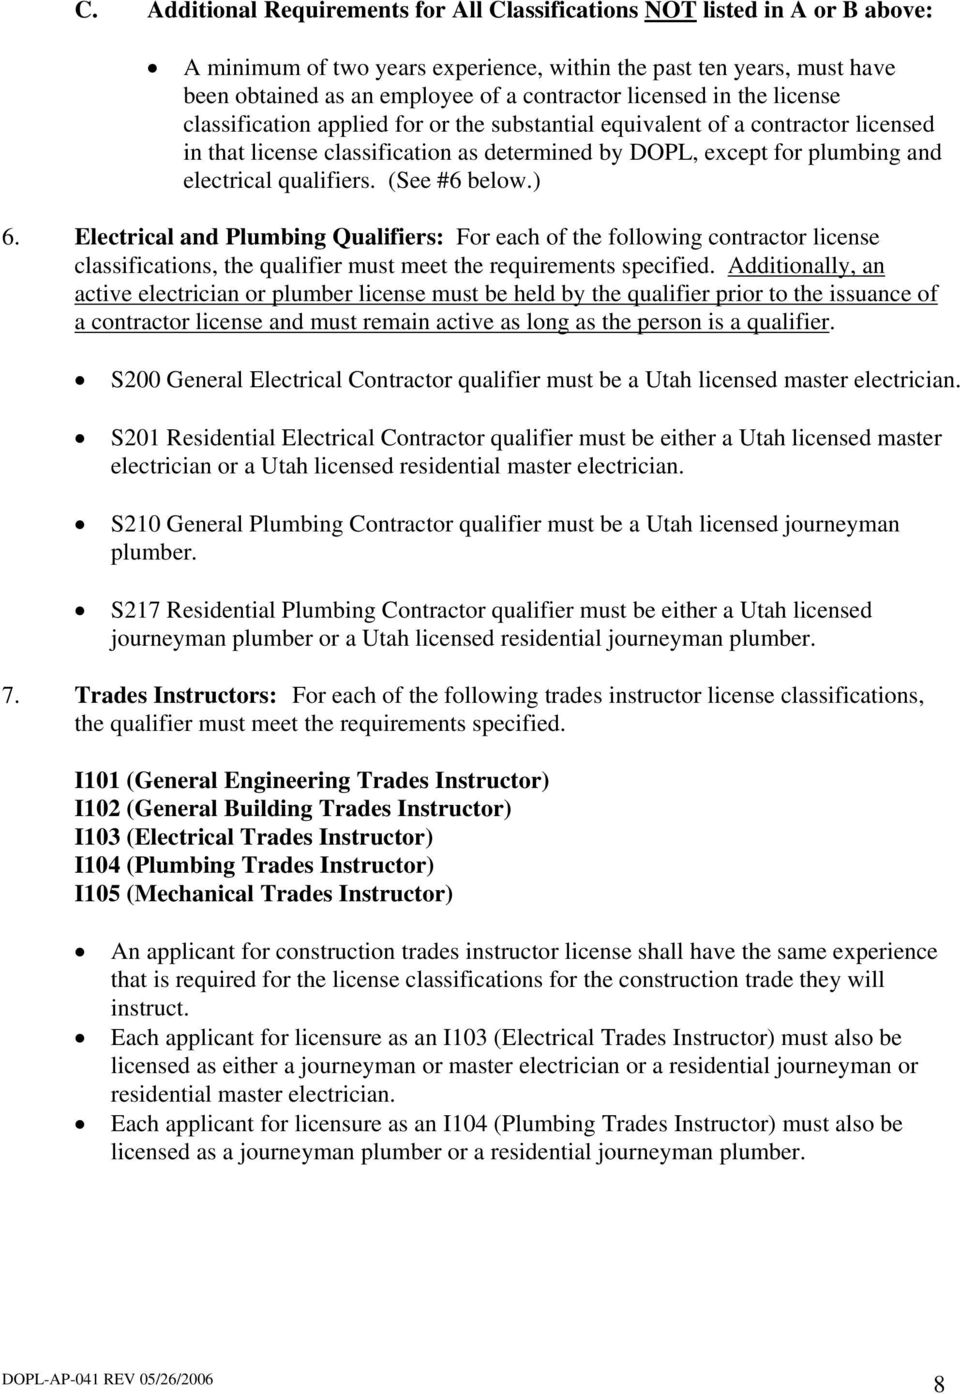 State Of Utah Division Of Occupational And Professional Licensing